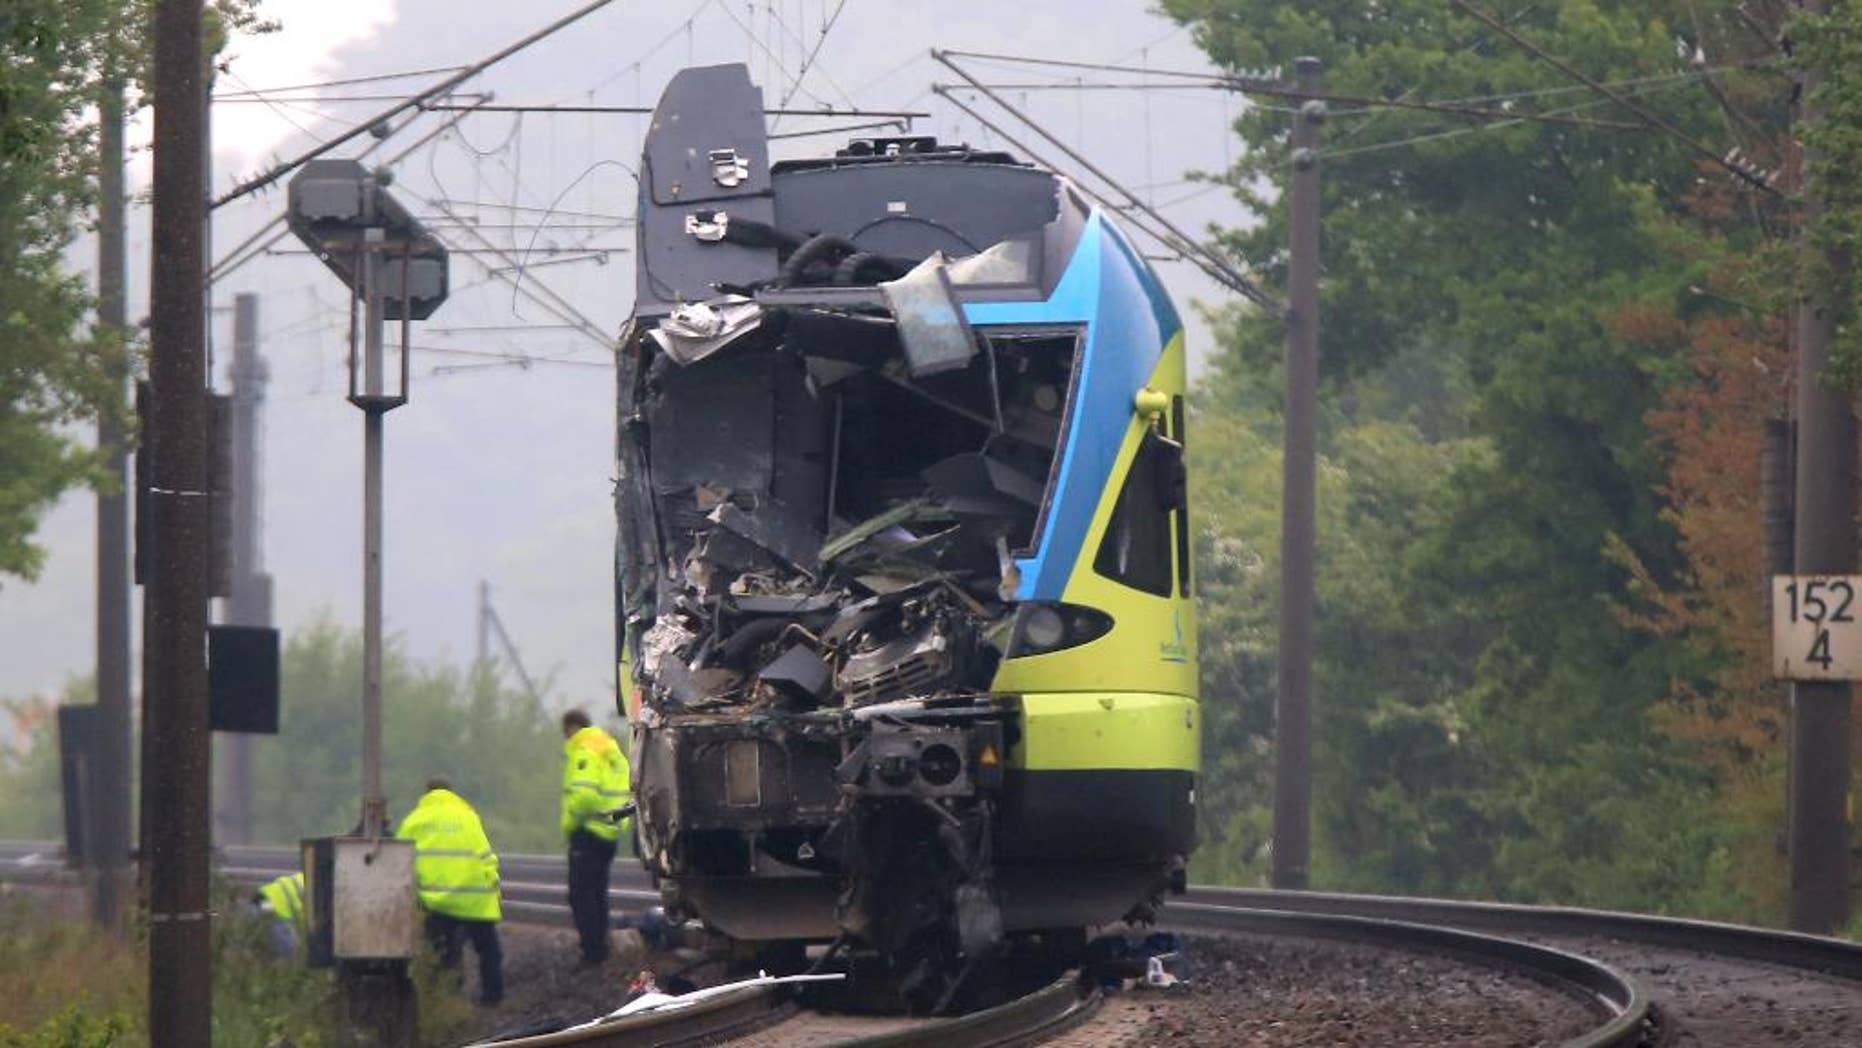 Workers are busy near the damaged train that hit a truck on a road crossing near Ibbenbueren, western Germany, Saturday, May 16, 2015. Police said two people have been killed and at least 20 others were injured in the accident. (Marcel Kusch/dpa via AP)